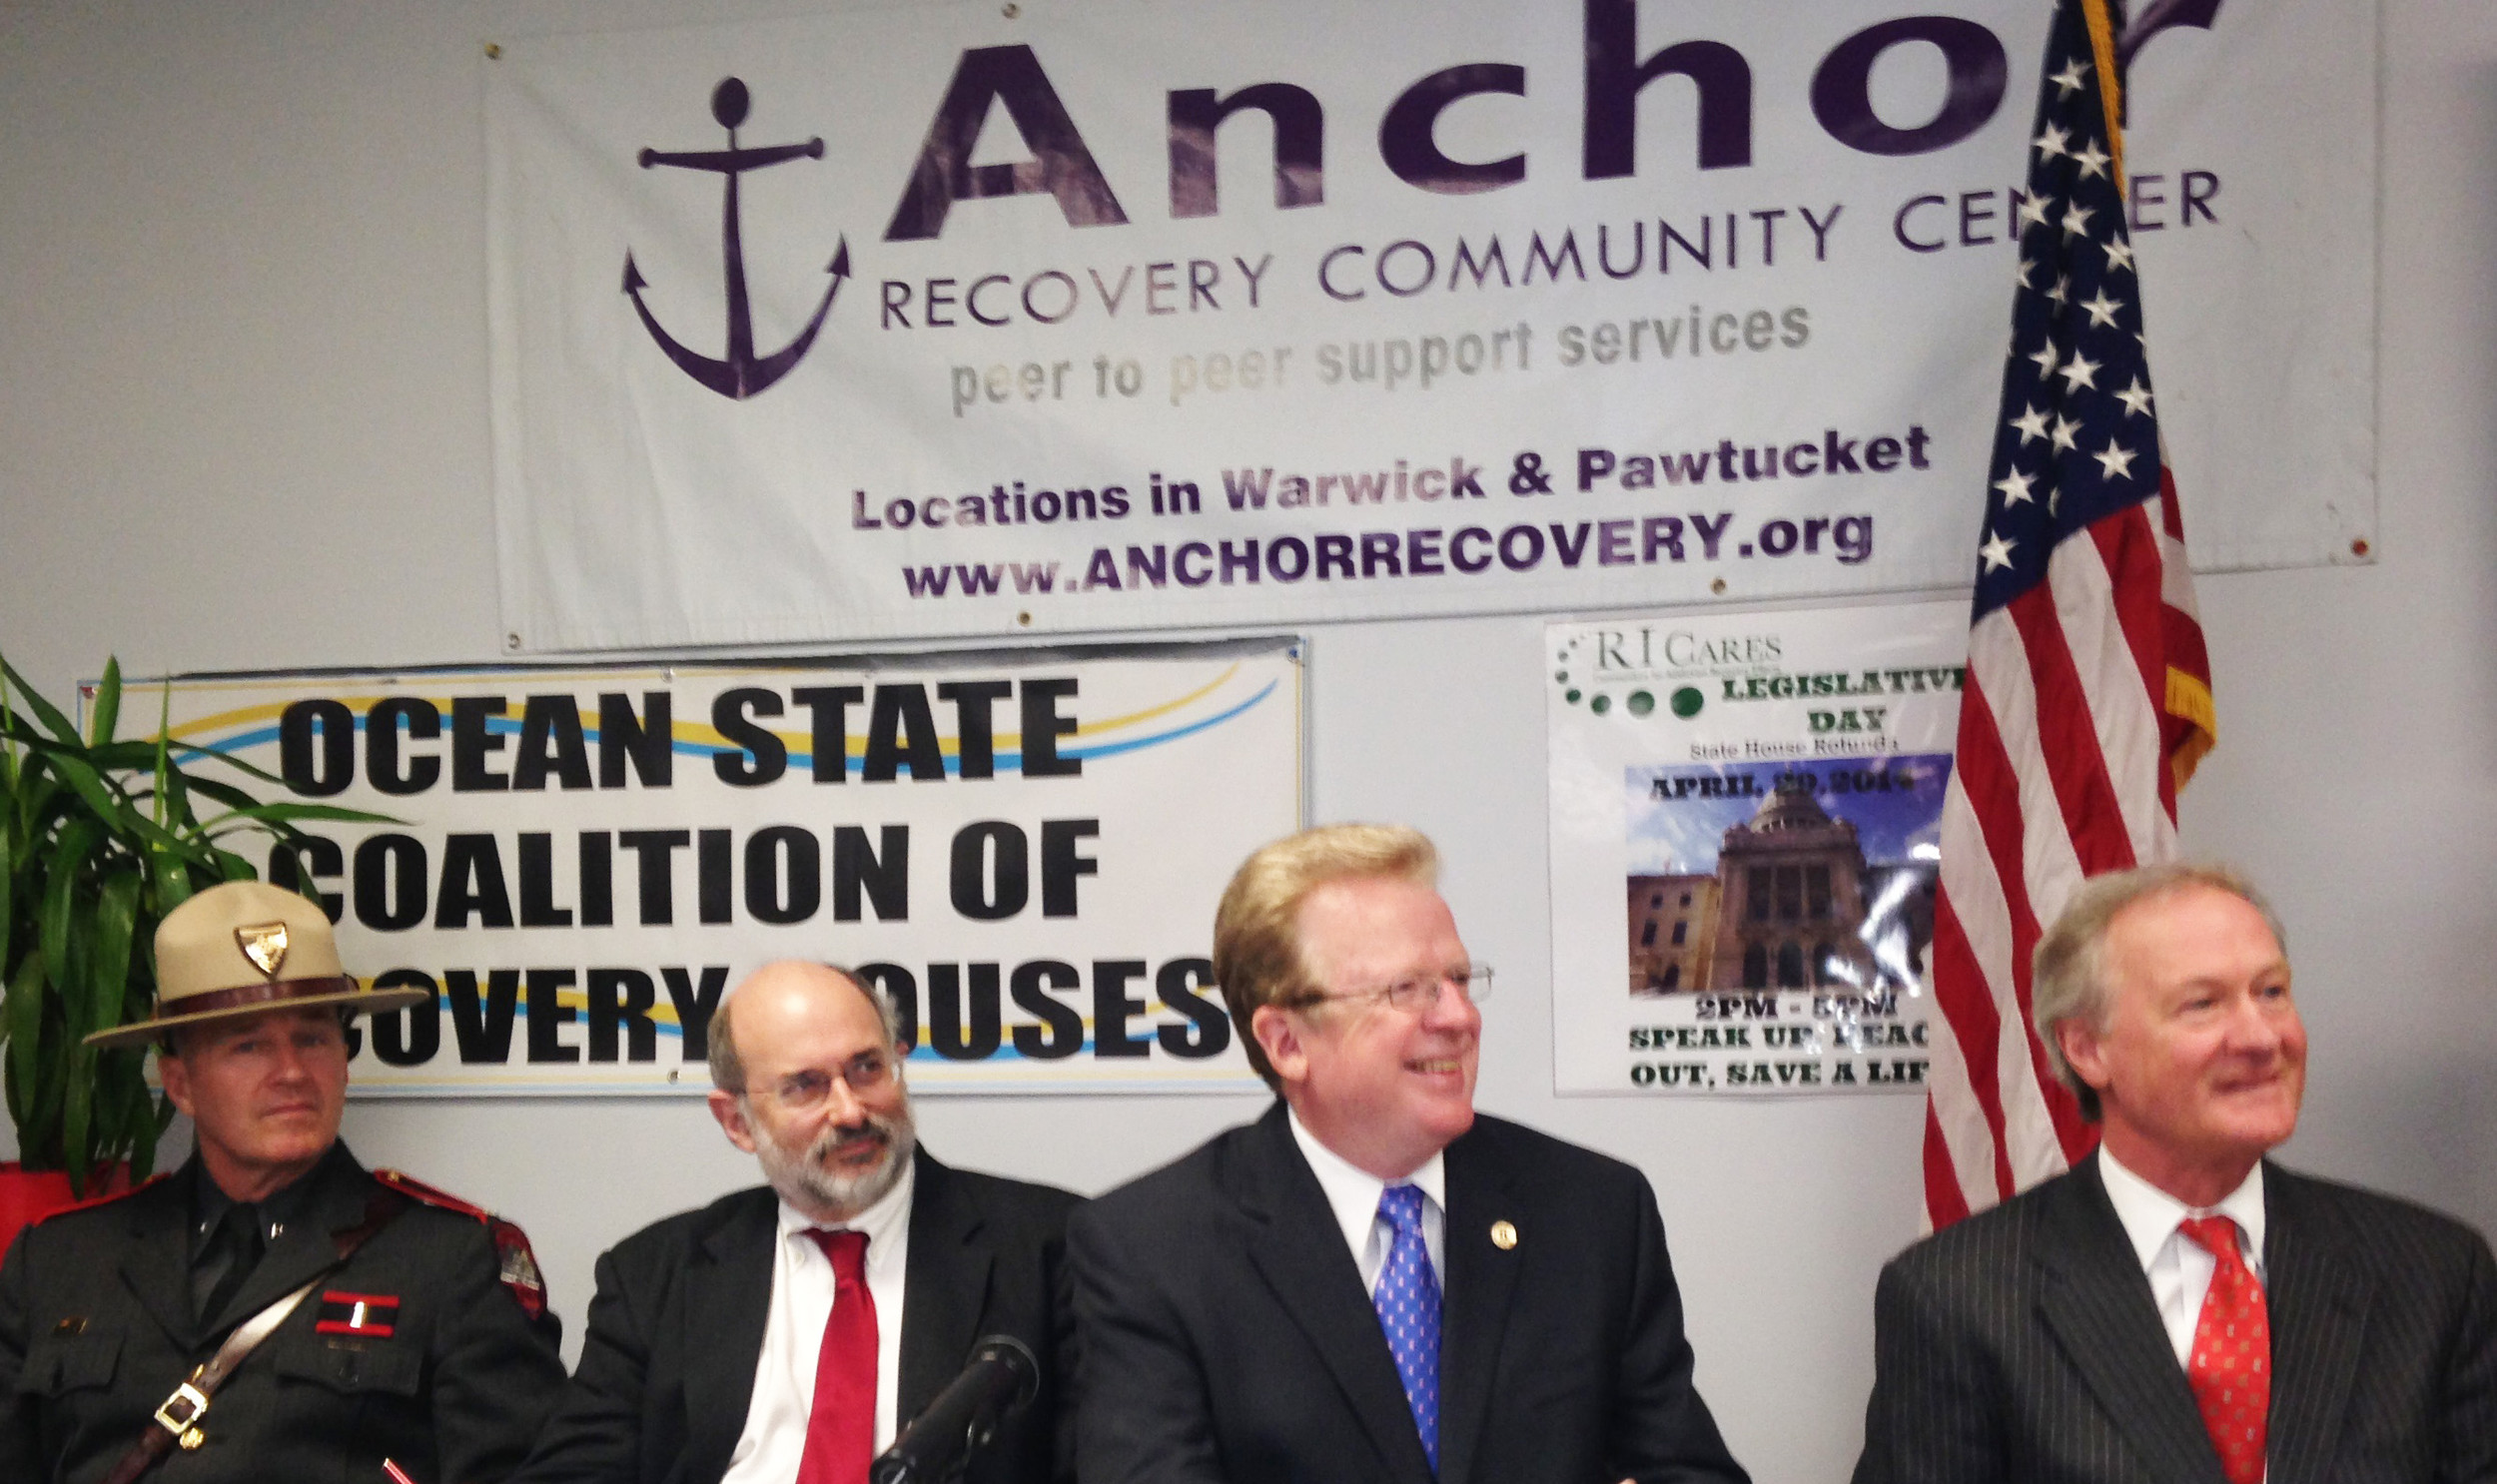 R.I. State Police Colonel Steven O'Donnell, R.I. Department of Health Director Dr. Michael Fine, Craig Stenning, director of the R.I. Department of Behavioral Healthcare, Developmental Disabilities and Hospitals, and Gov. Lincoln Chafee at a new conference in April at the Anchor Recovery Community Center in Pawtucket.